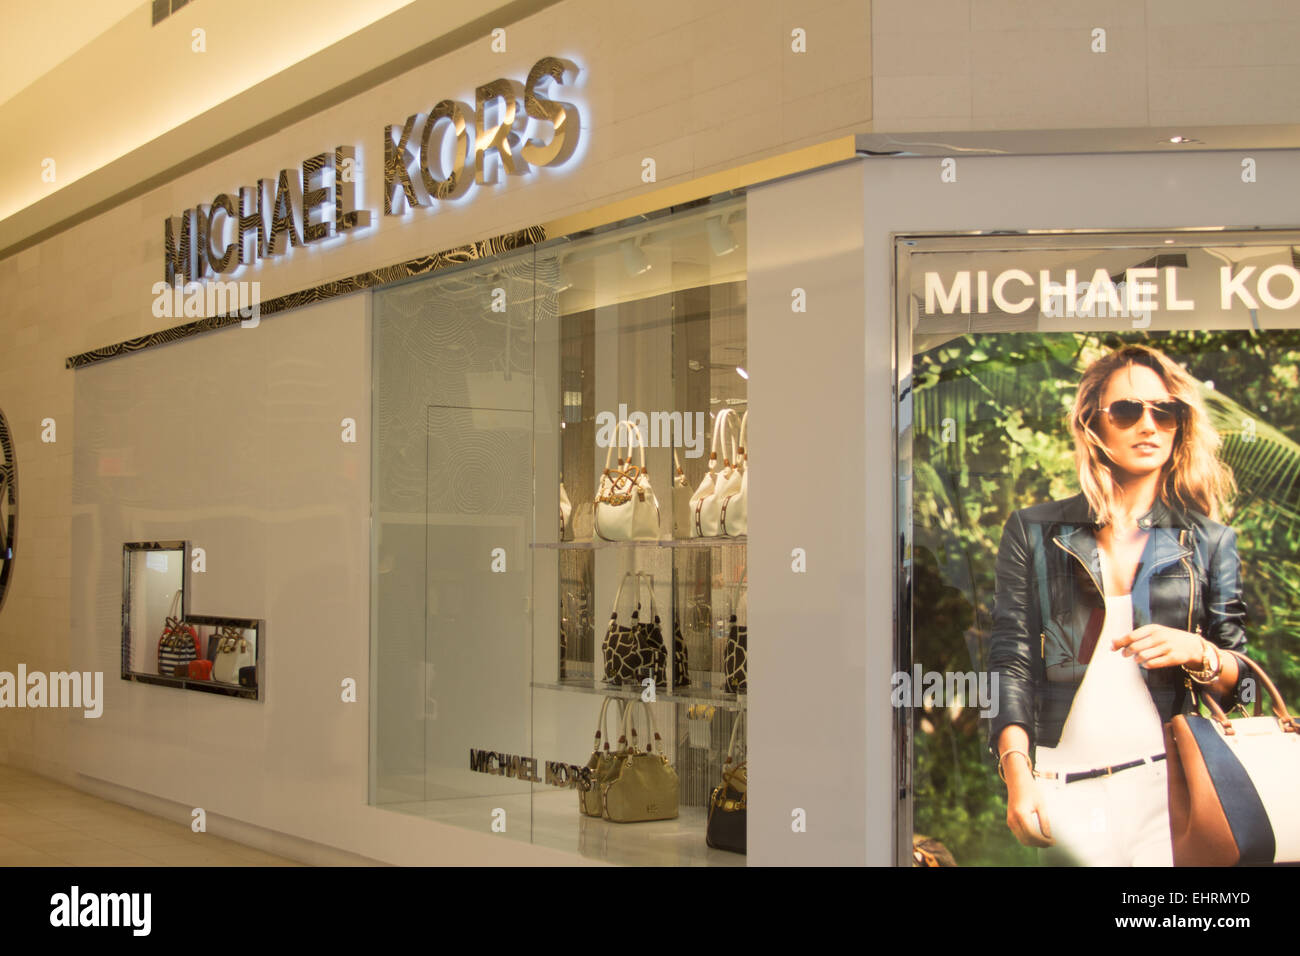 Michael kors store at the fashion outlets of chicago mall for Fashion outlet